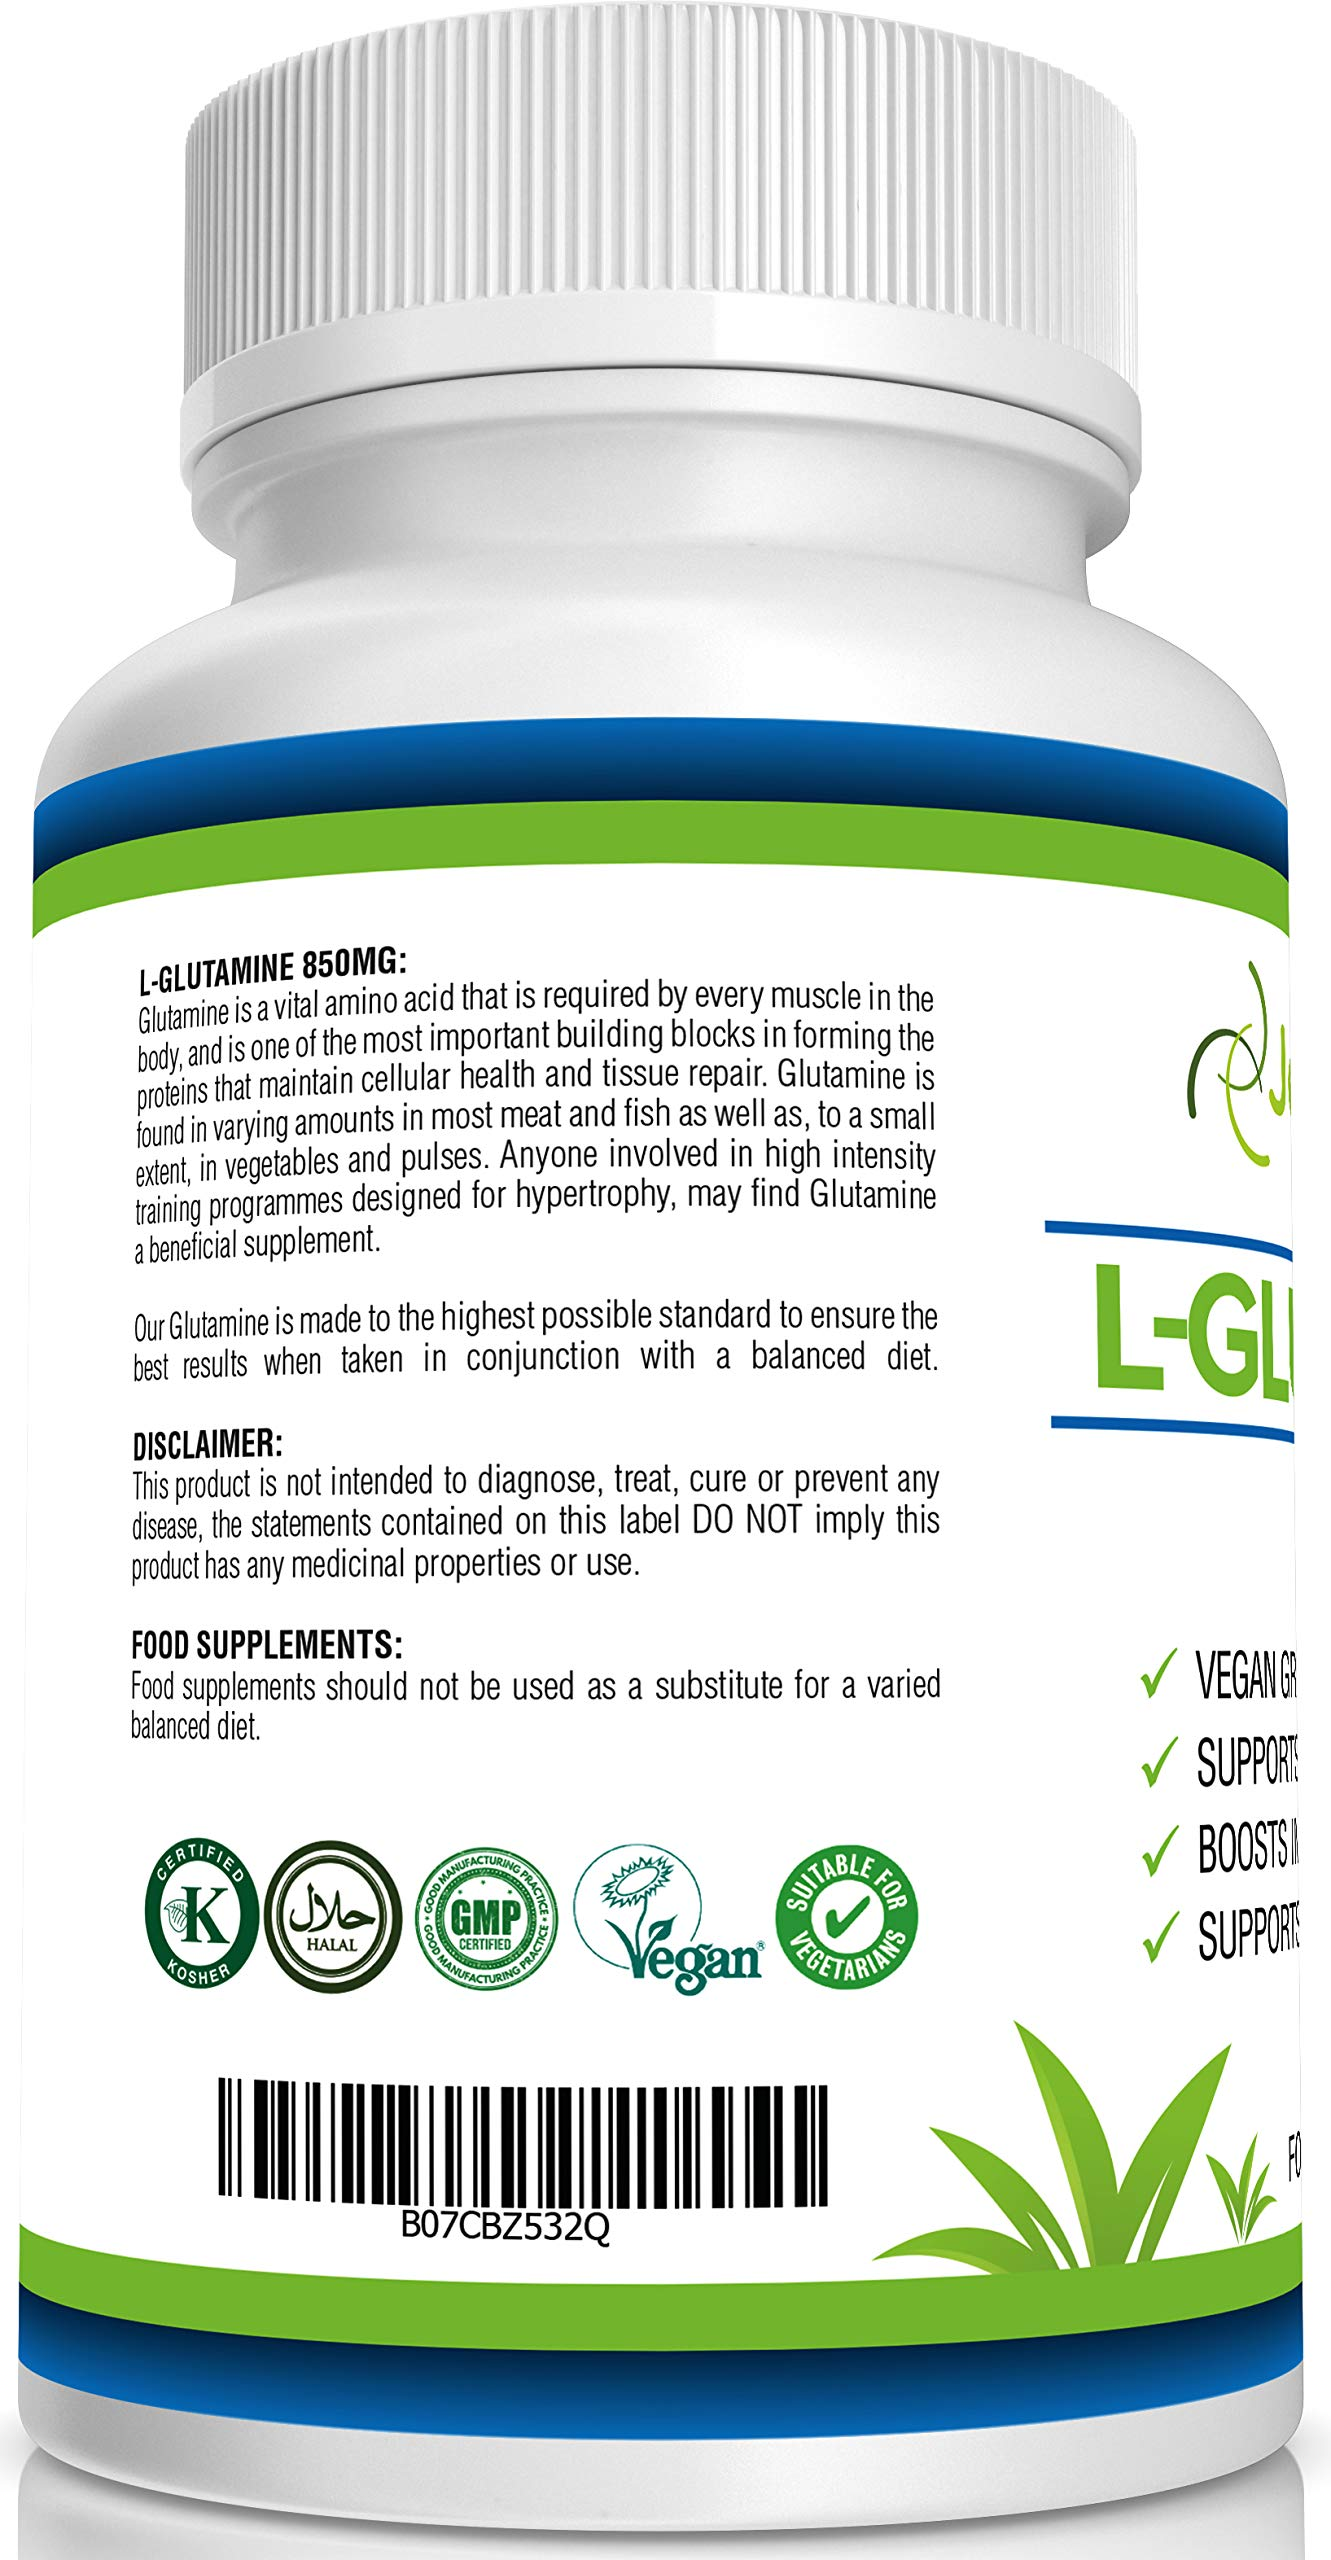 81VhlcdxzVL - JeaKen - L-GLUTAMINE Capsules - from Essential Amino Acid Powder - Amino Acids Supplements to Boost Muscle Recovery…